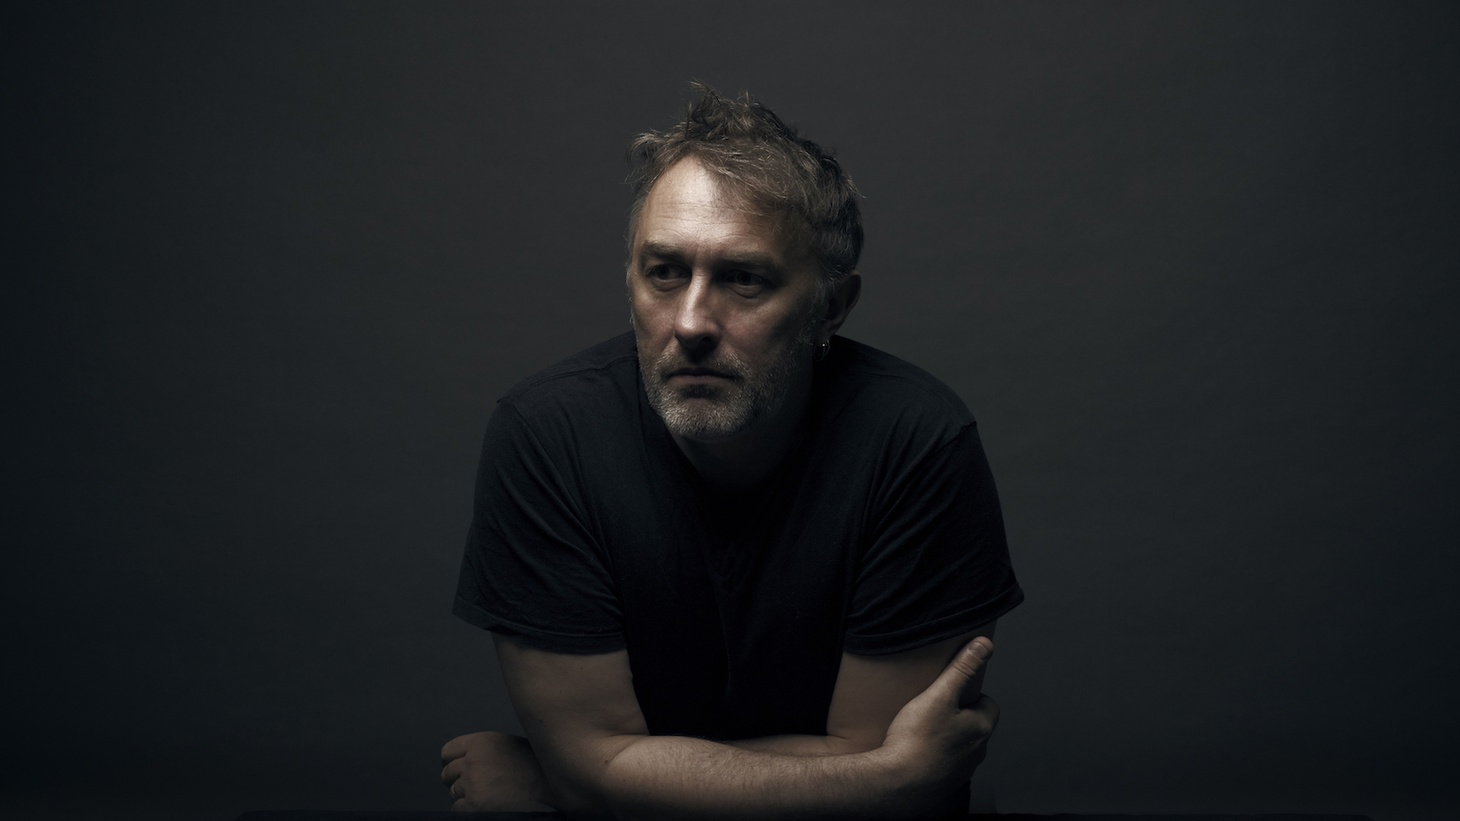 French composer and musician Yann Tiersen's new album All has him incorporating field recordings from Germany all the way to California.